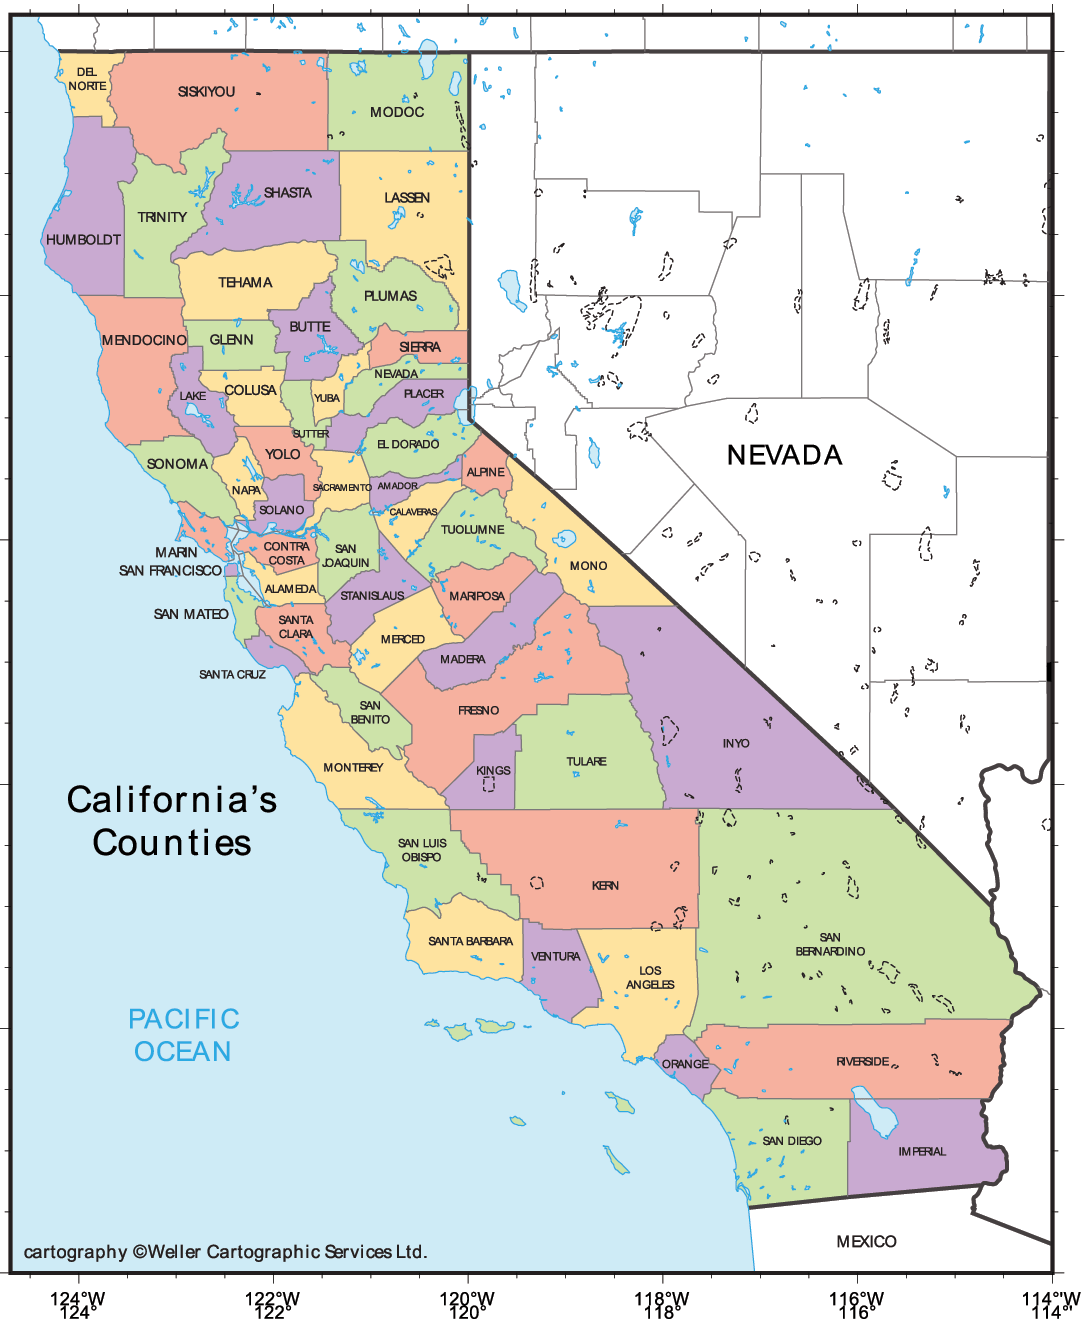 California Cities Map Mapsofnet - A map of california cities